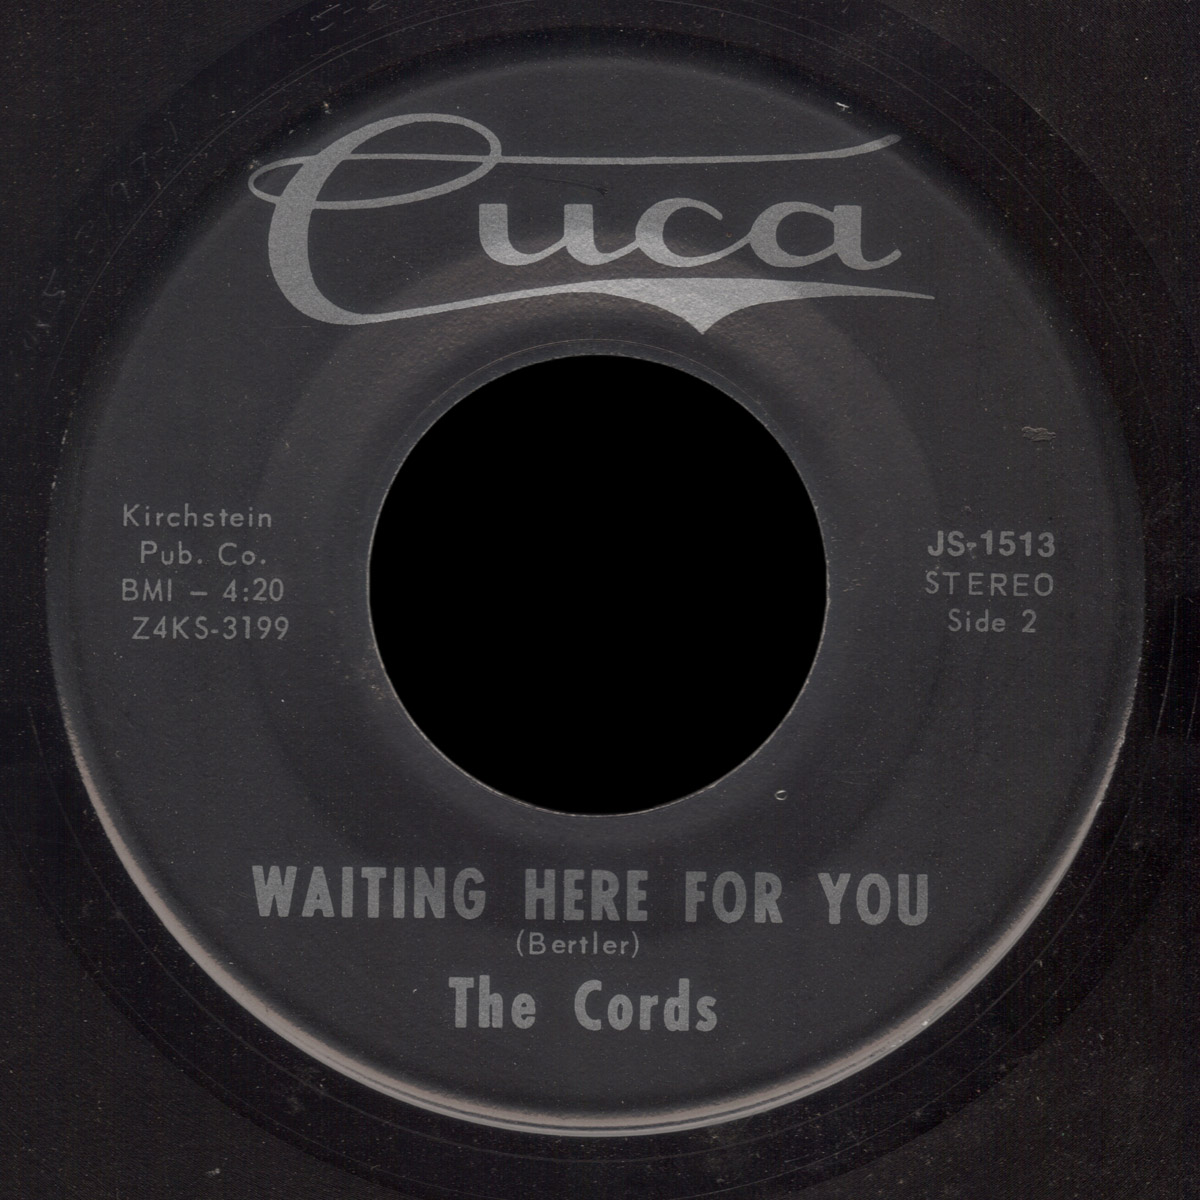 The Cords Cuca 45 Waiting Here for You